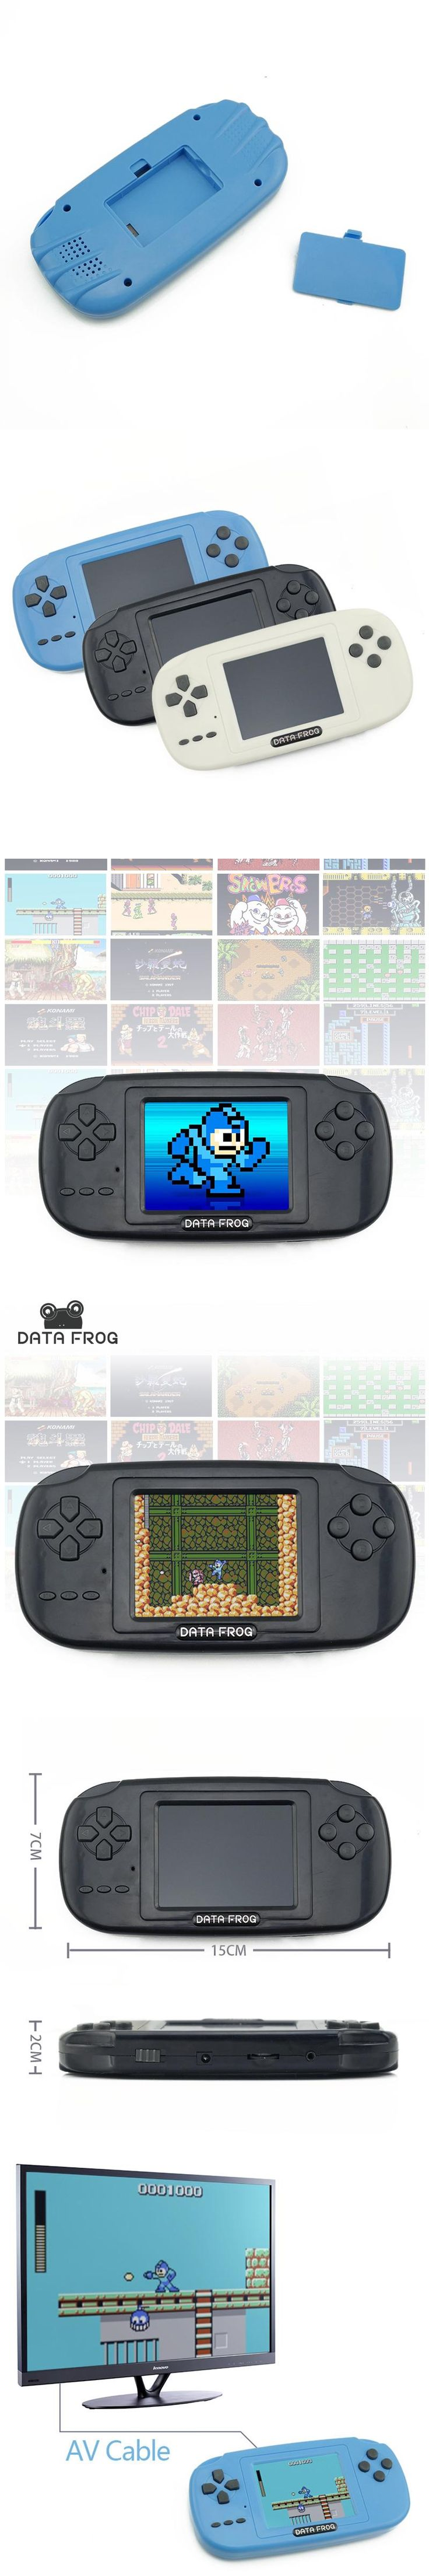 Game coolers portable - Data Frog Handheld Game Players With 168 Built In Games 3 Inch Screen Game Console 8bit